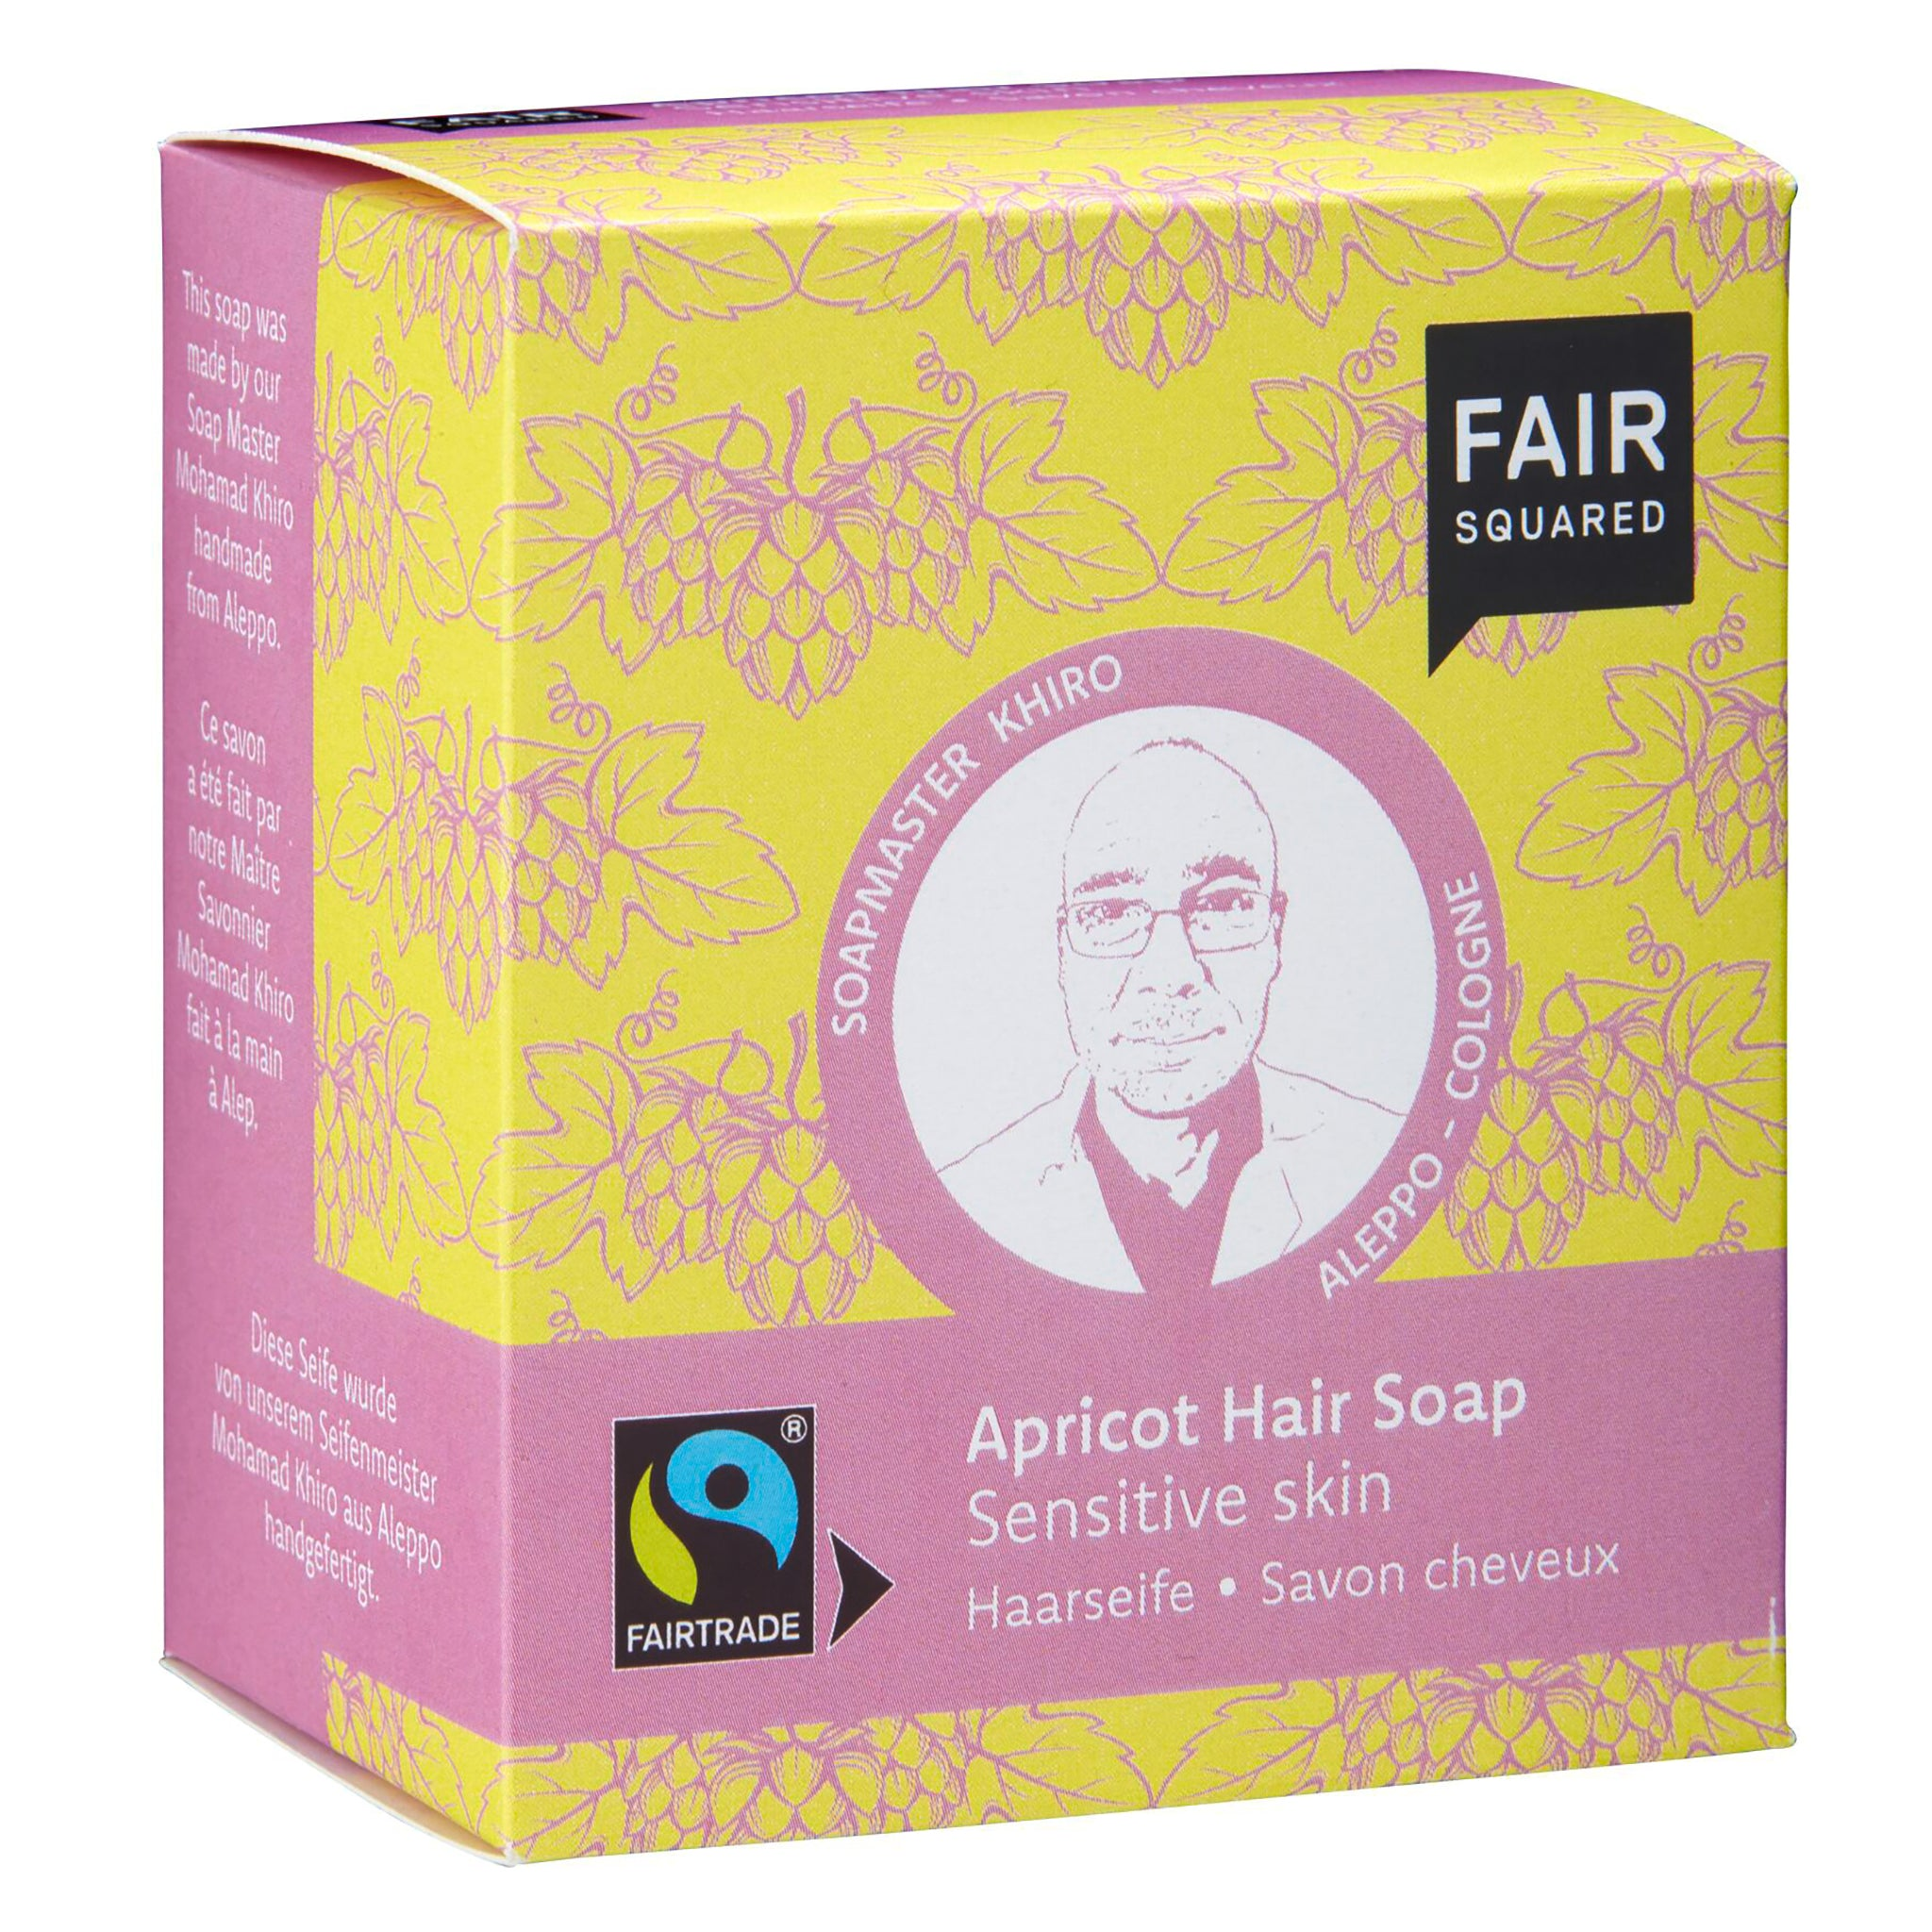 Apricot Hair Soap with Cotton Soap Bag - For Sensitive Scalps